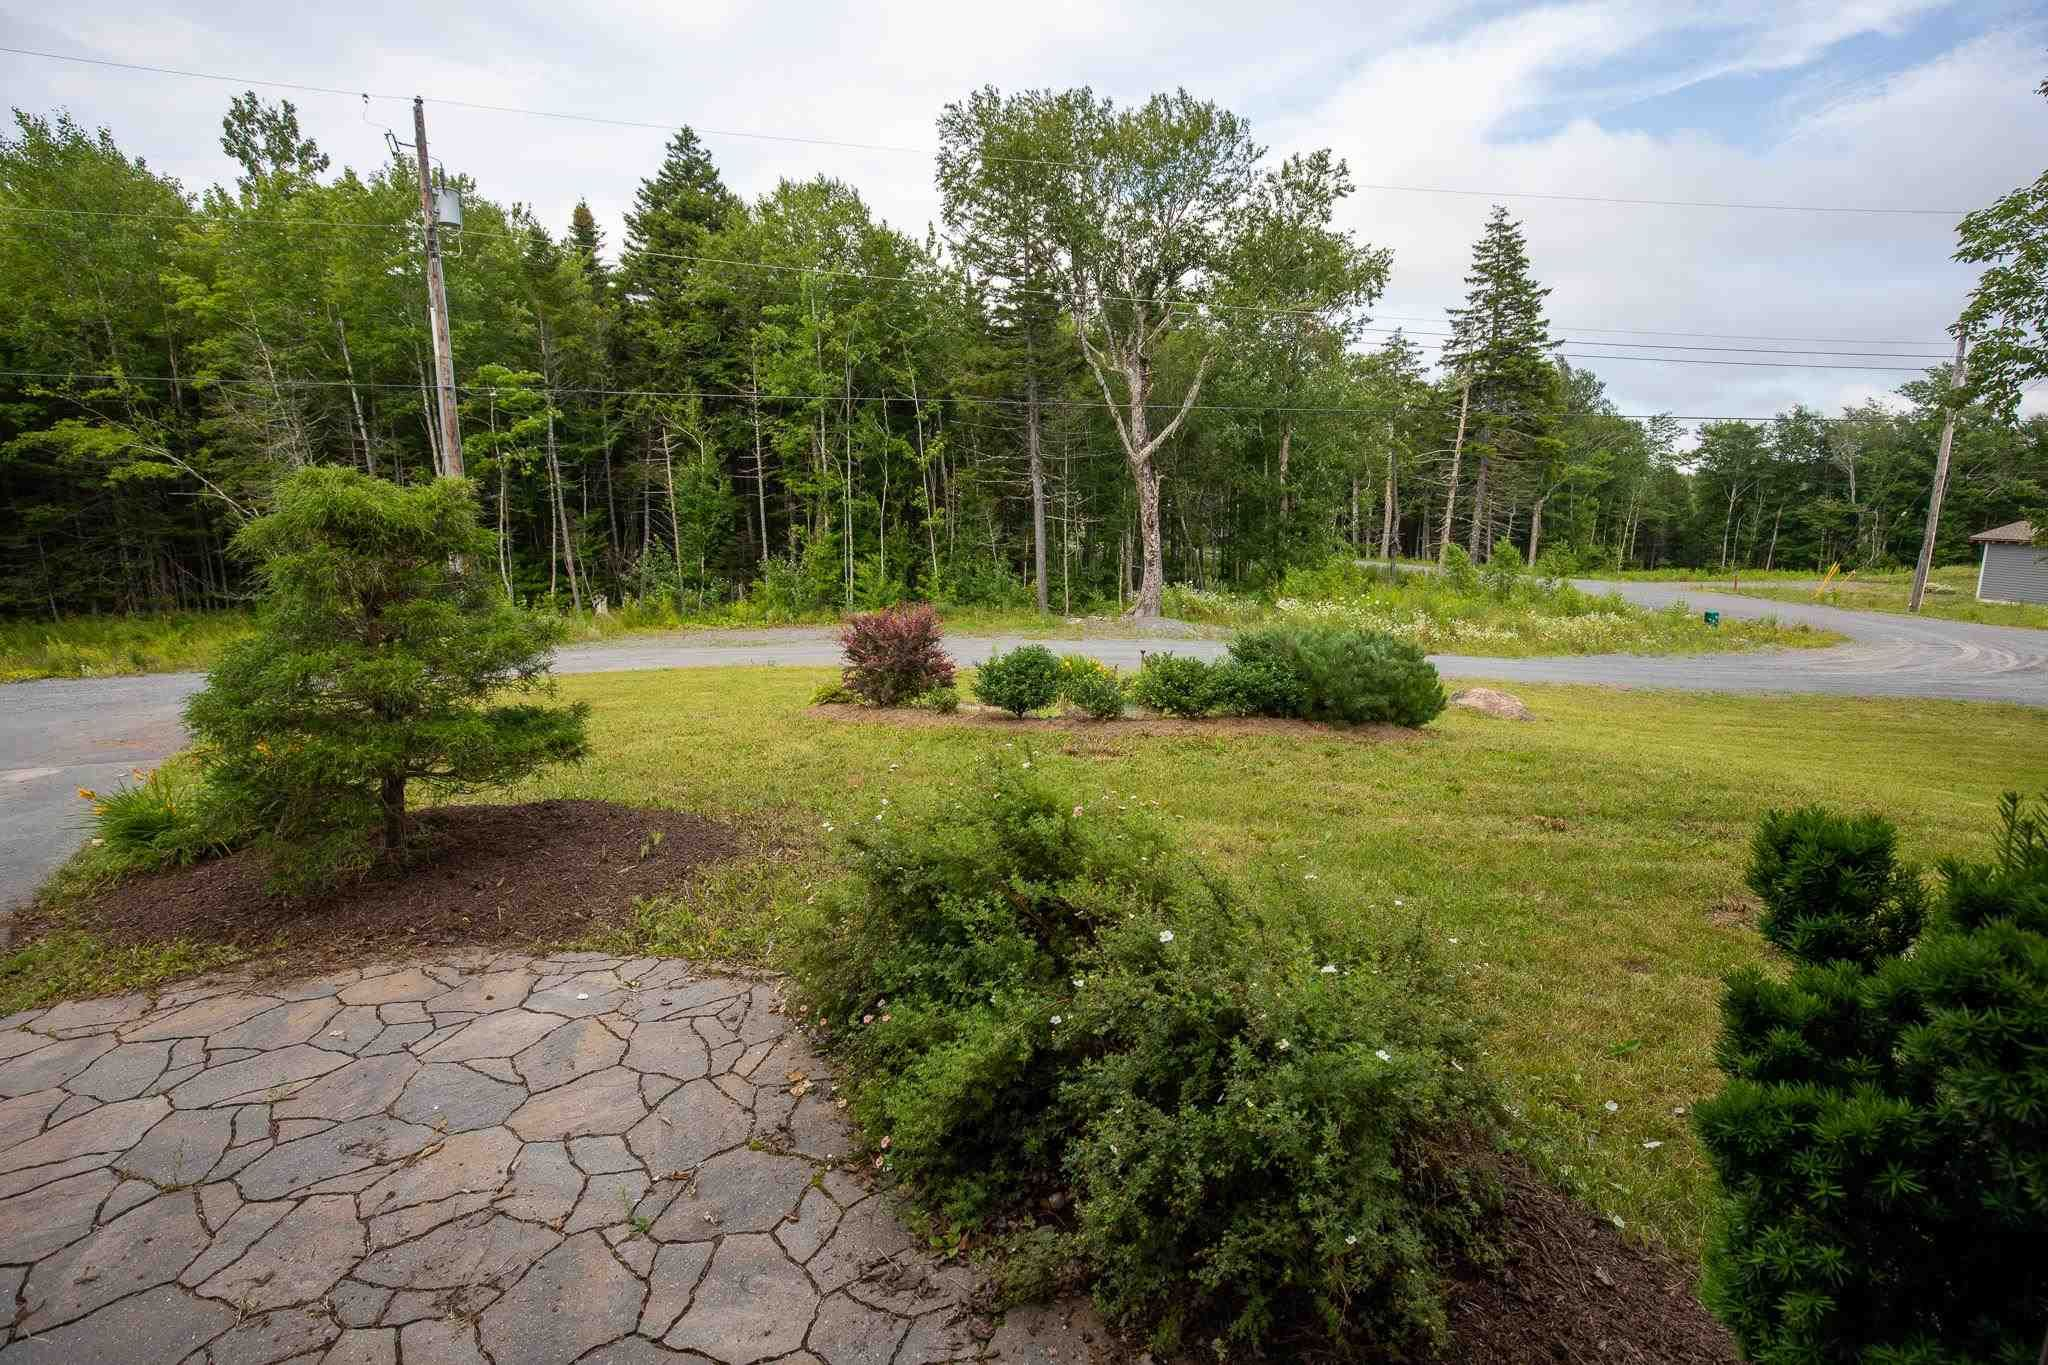 Photo 31: Photos: 7 Black Cherry Lane in Ardoise: 403-Hants County Residential for sale (Annapolis Valley)  : MLS®# 202118682